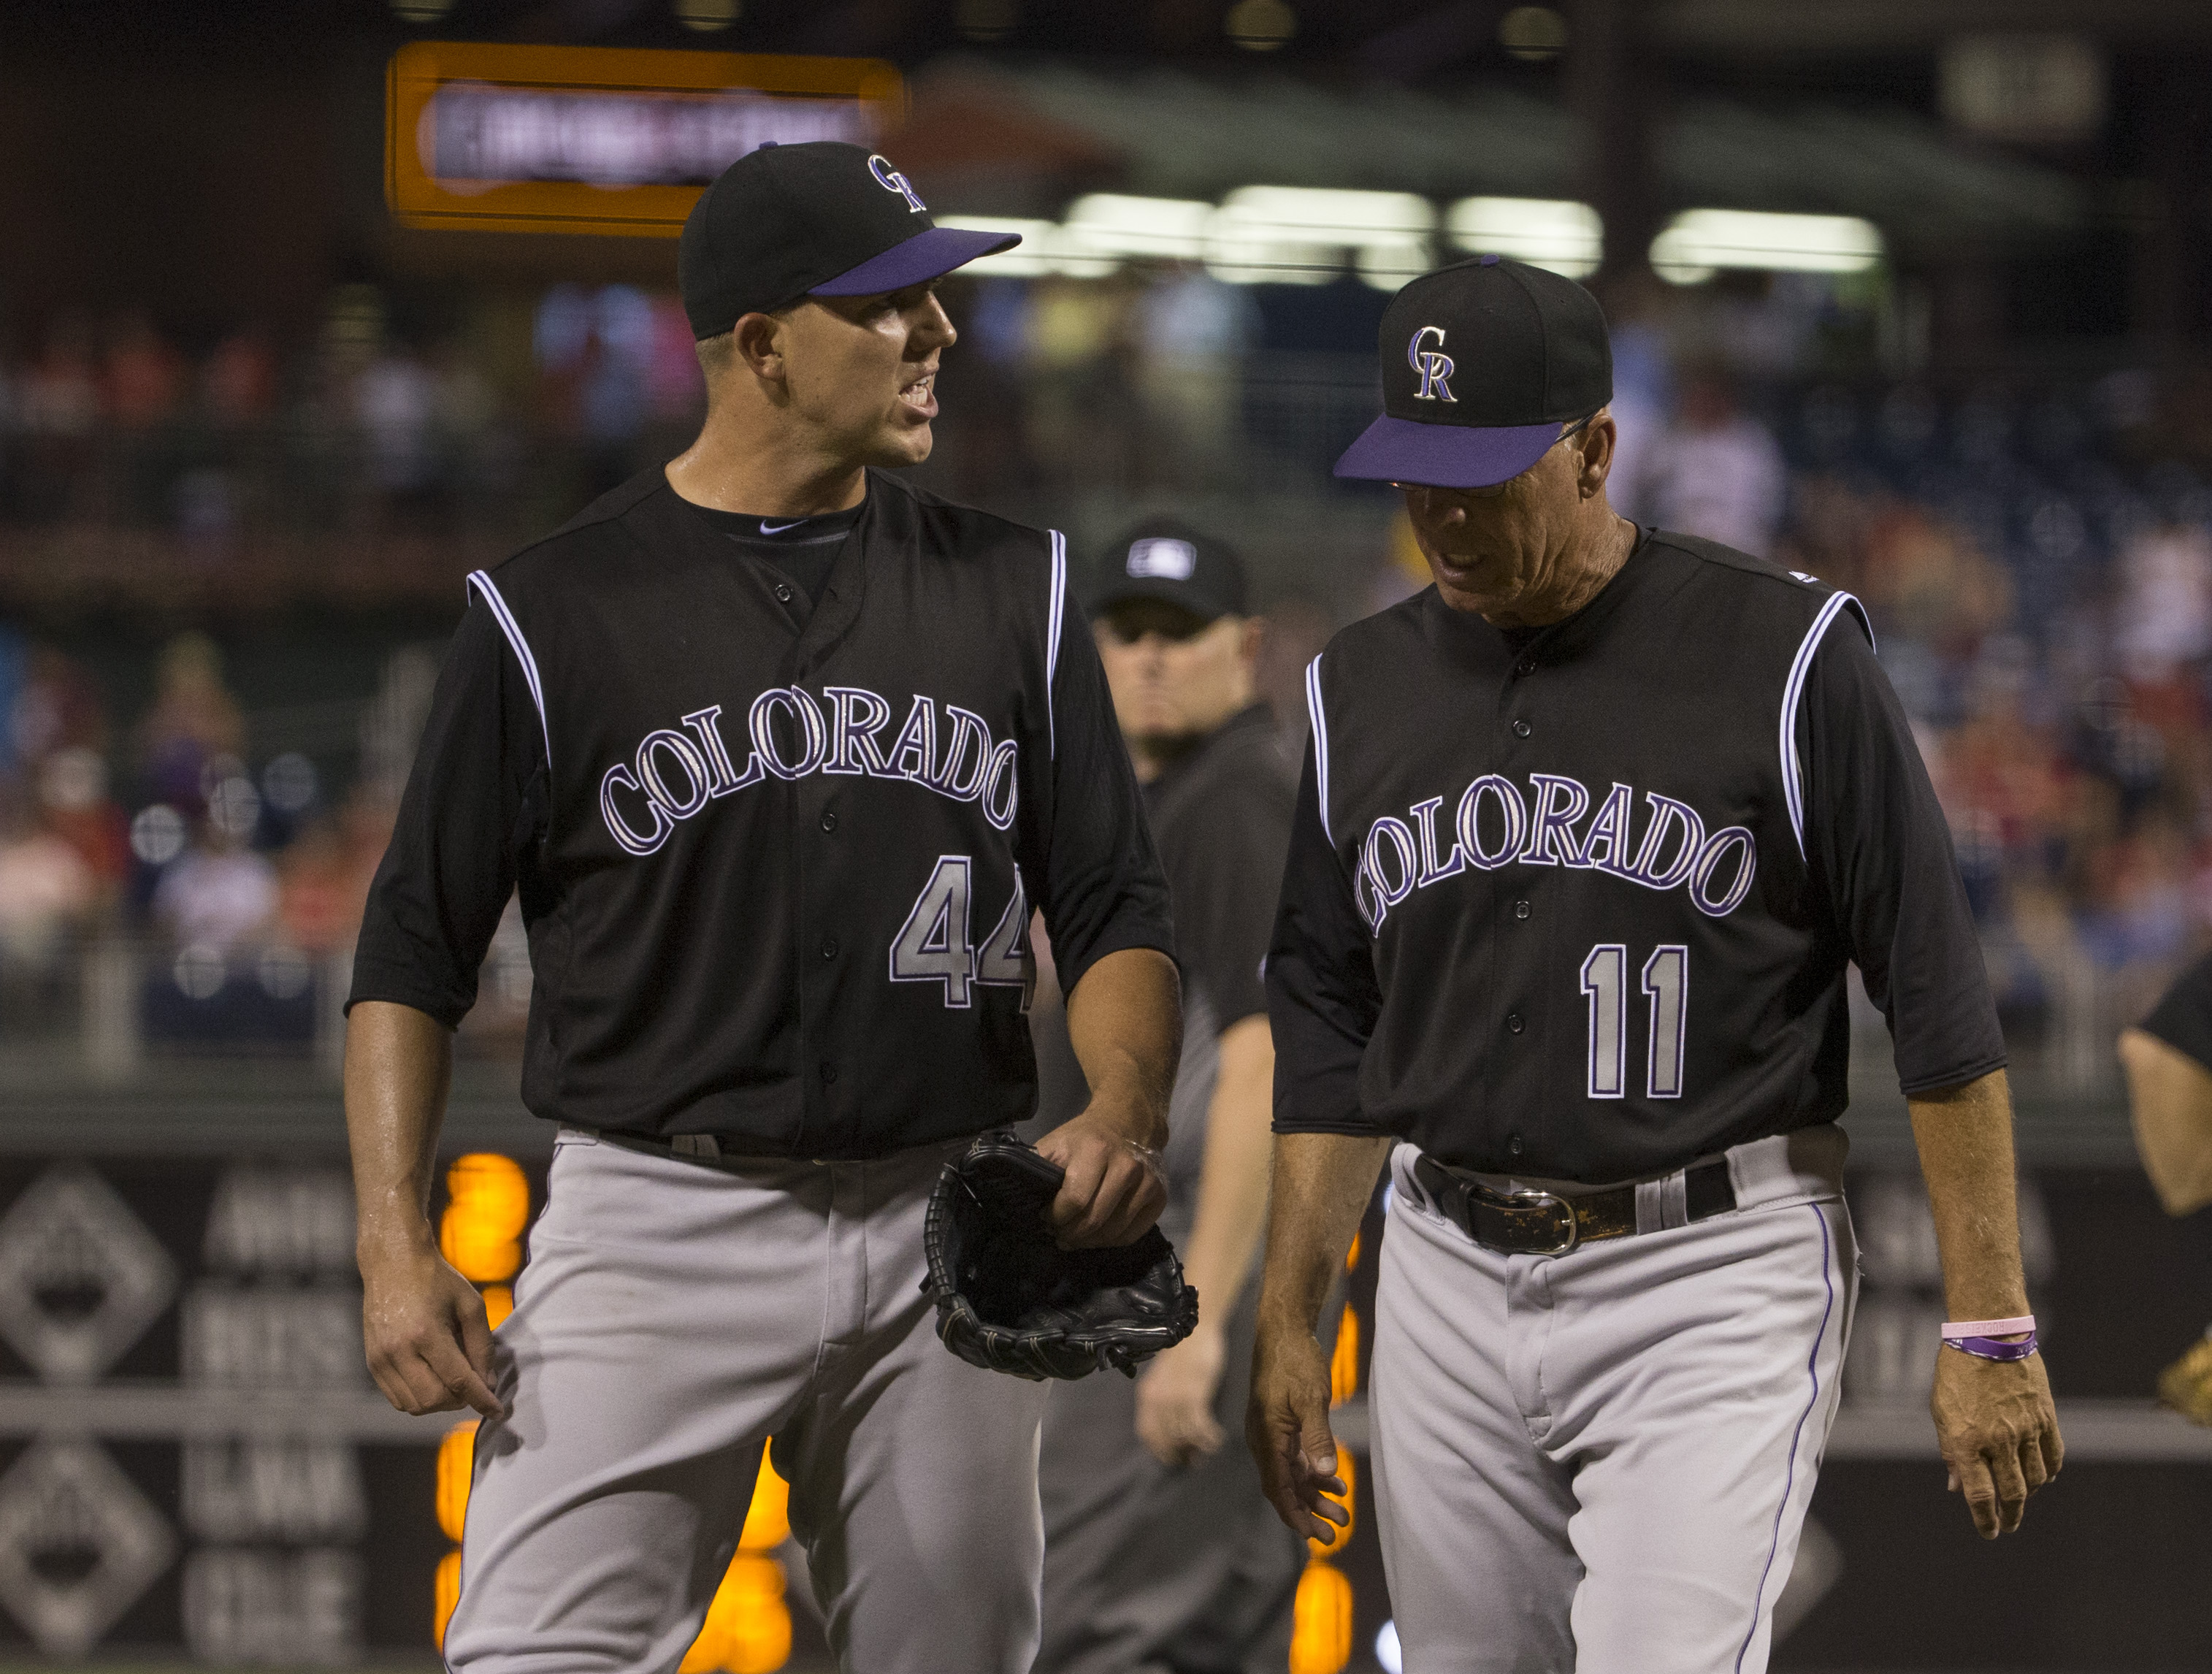 Tyler Anderson #44 of the Colorado Rockies walks off the field with Tom Runnells #11 of the Colorado Rockies after being ejected from the came for hitting Maikel Franco #7 of the Philadelphia Phillies (NOT PICTURED) in the bottom of the fourth inning at Citizens Bank Park on August 13, 2016 in Philadelphia, Pennsylvania. (Photo by Mitchell Leff/Getty Images)